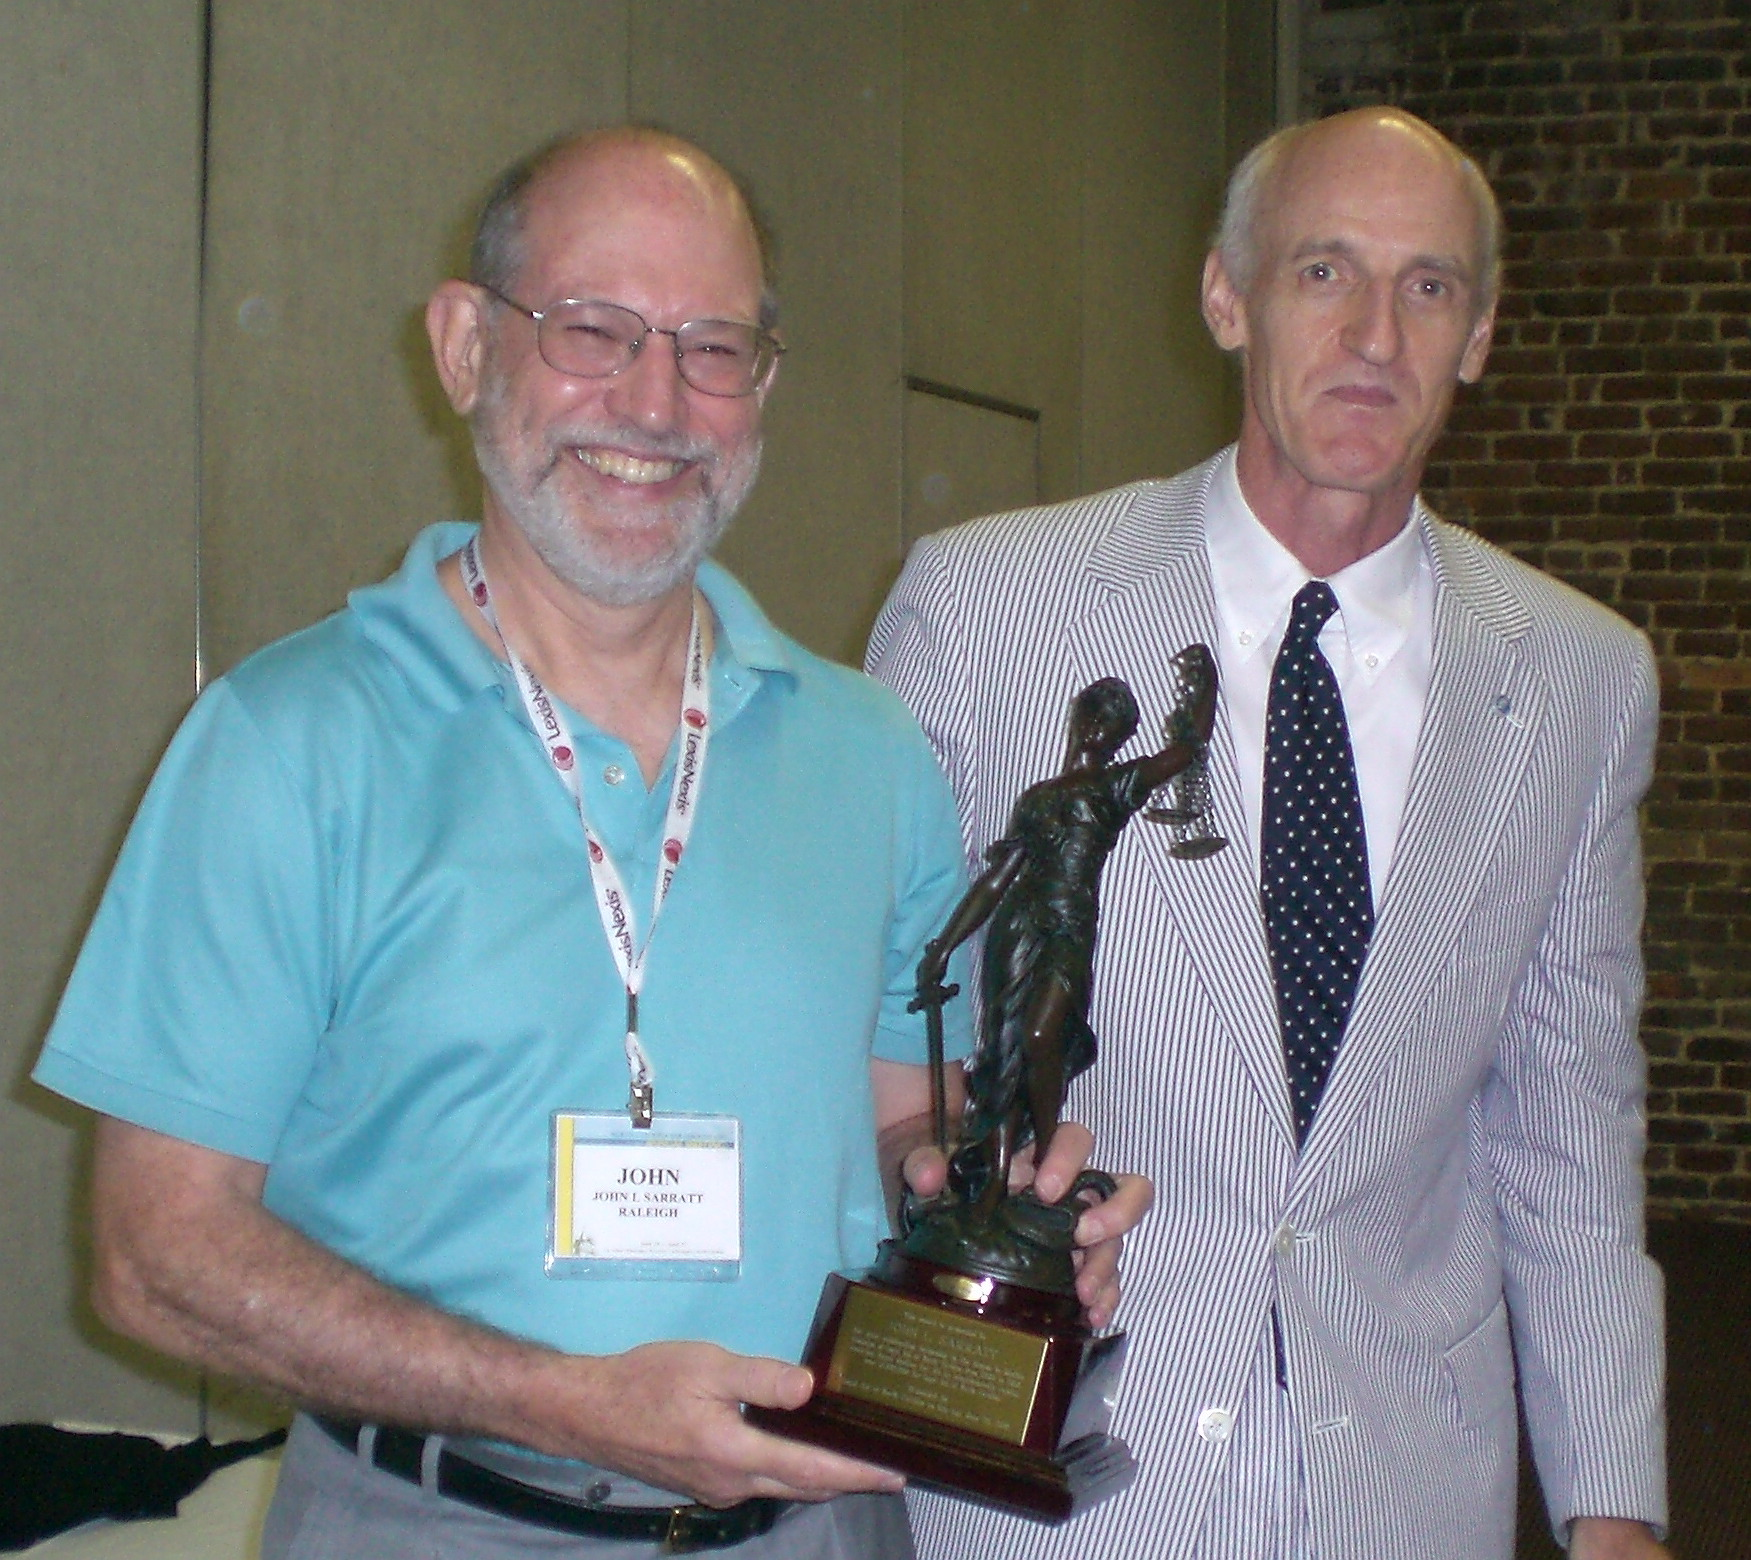 John L. Sarratt (l) accepts award from George Hausen, LANC Executive Director